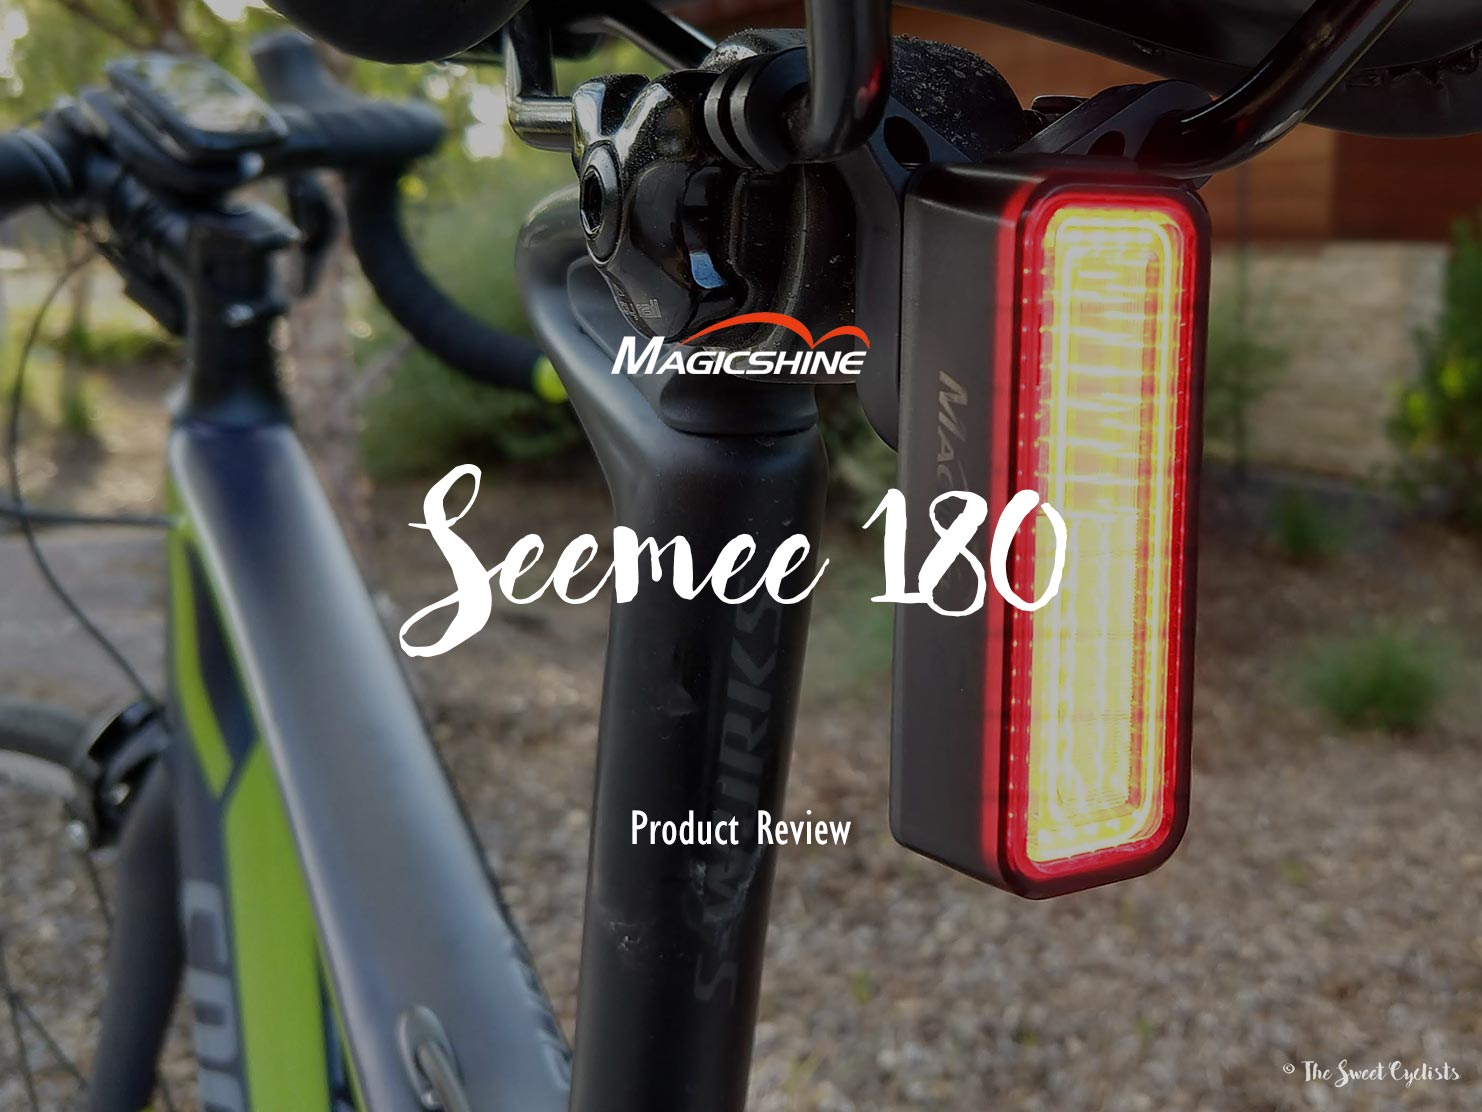 The Bright and Smart Magicshine Seemee 180